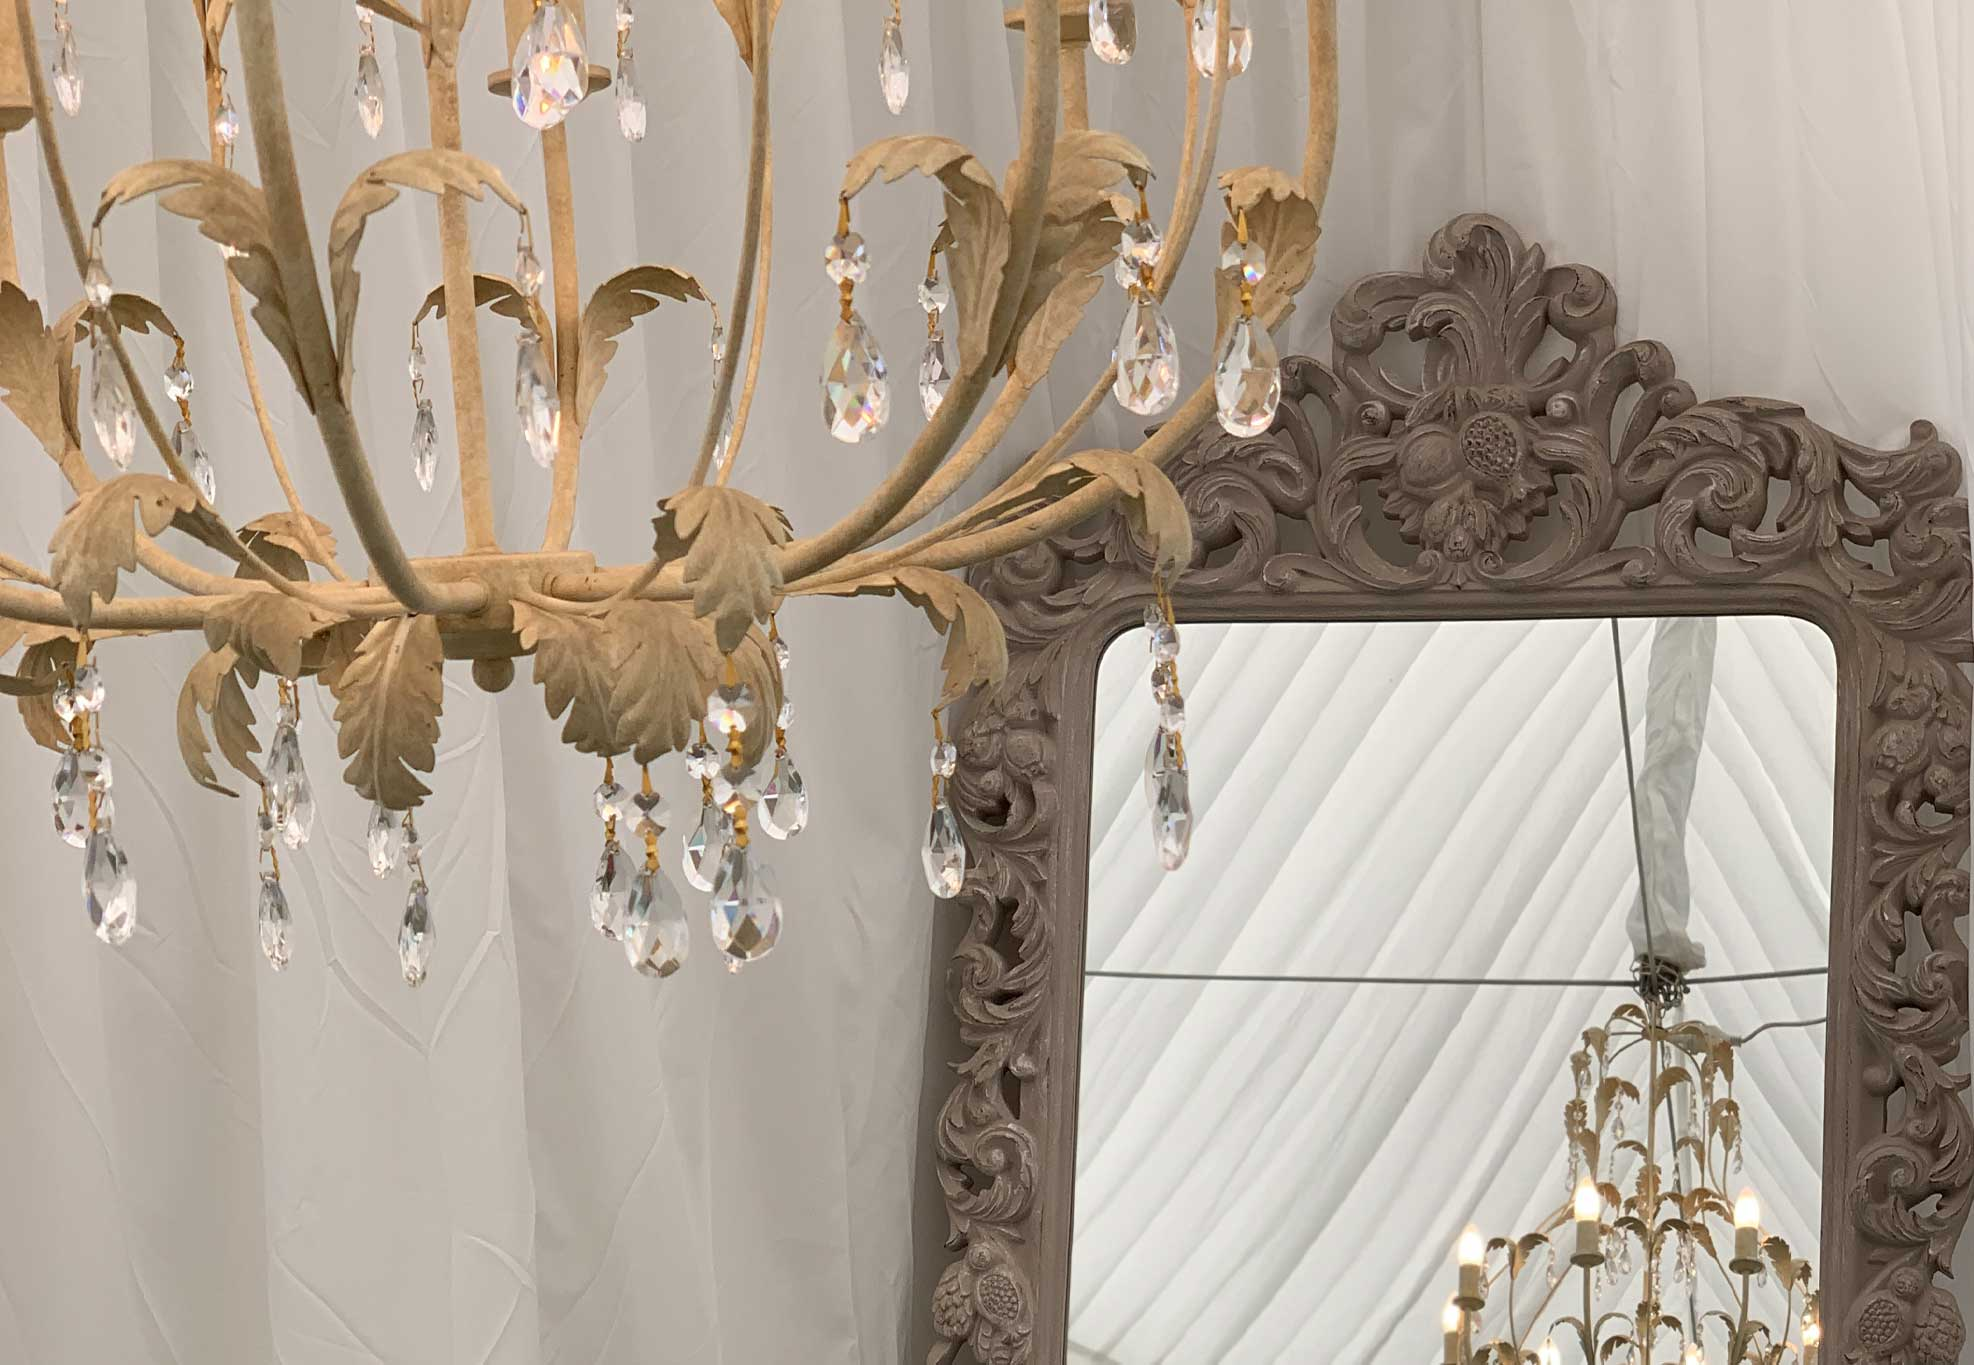 silk-estate-marquee-weddings-and-events-styling-and-hire-decor-style-items-mirror-1